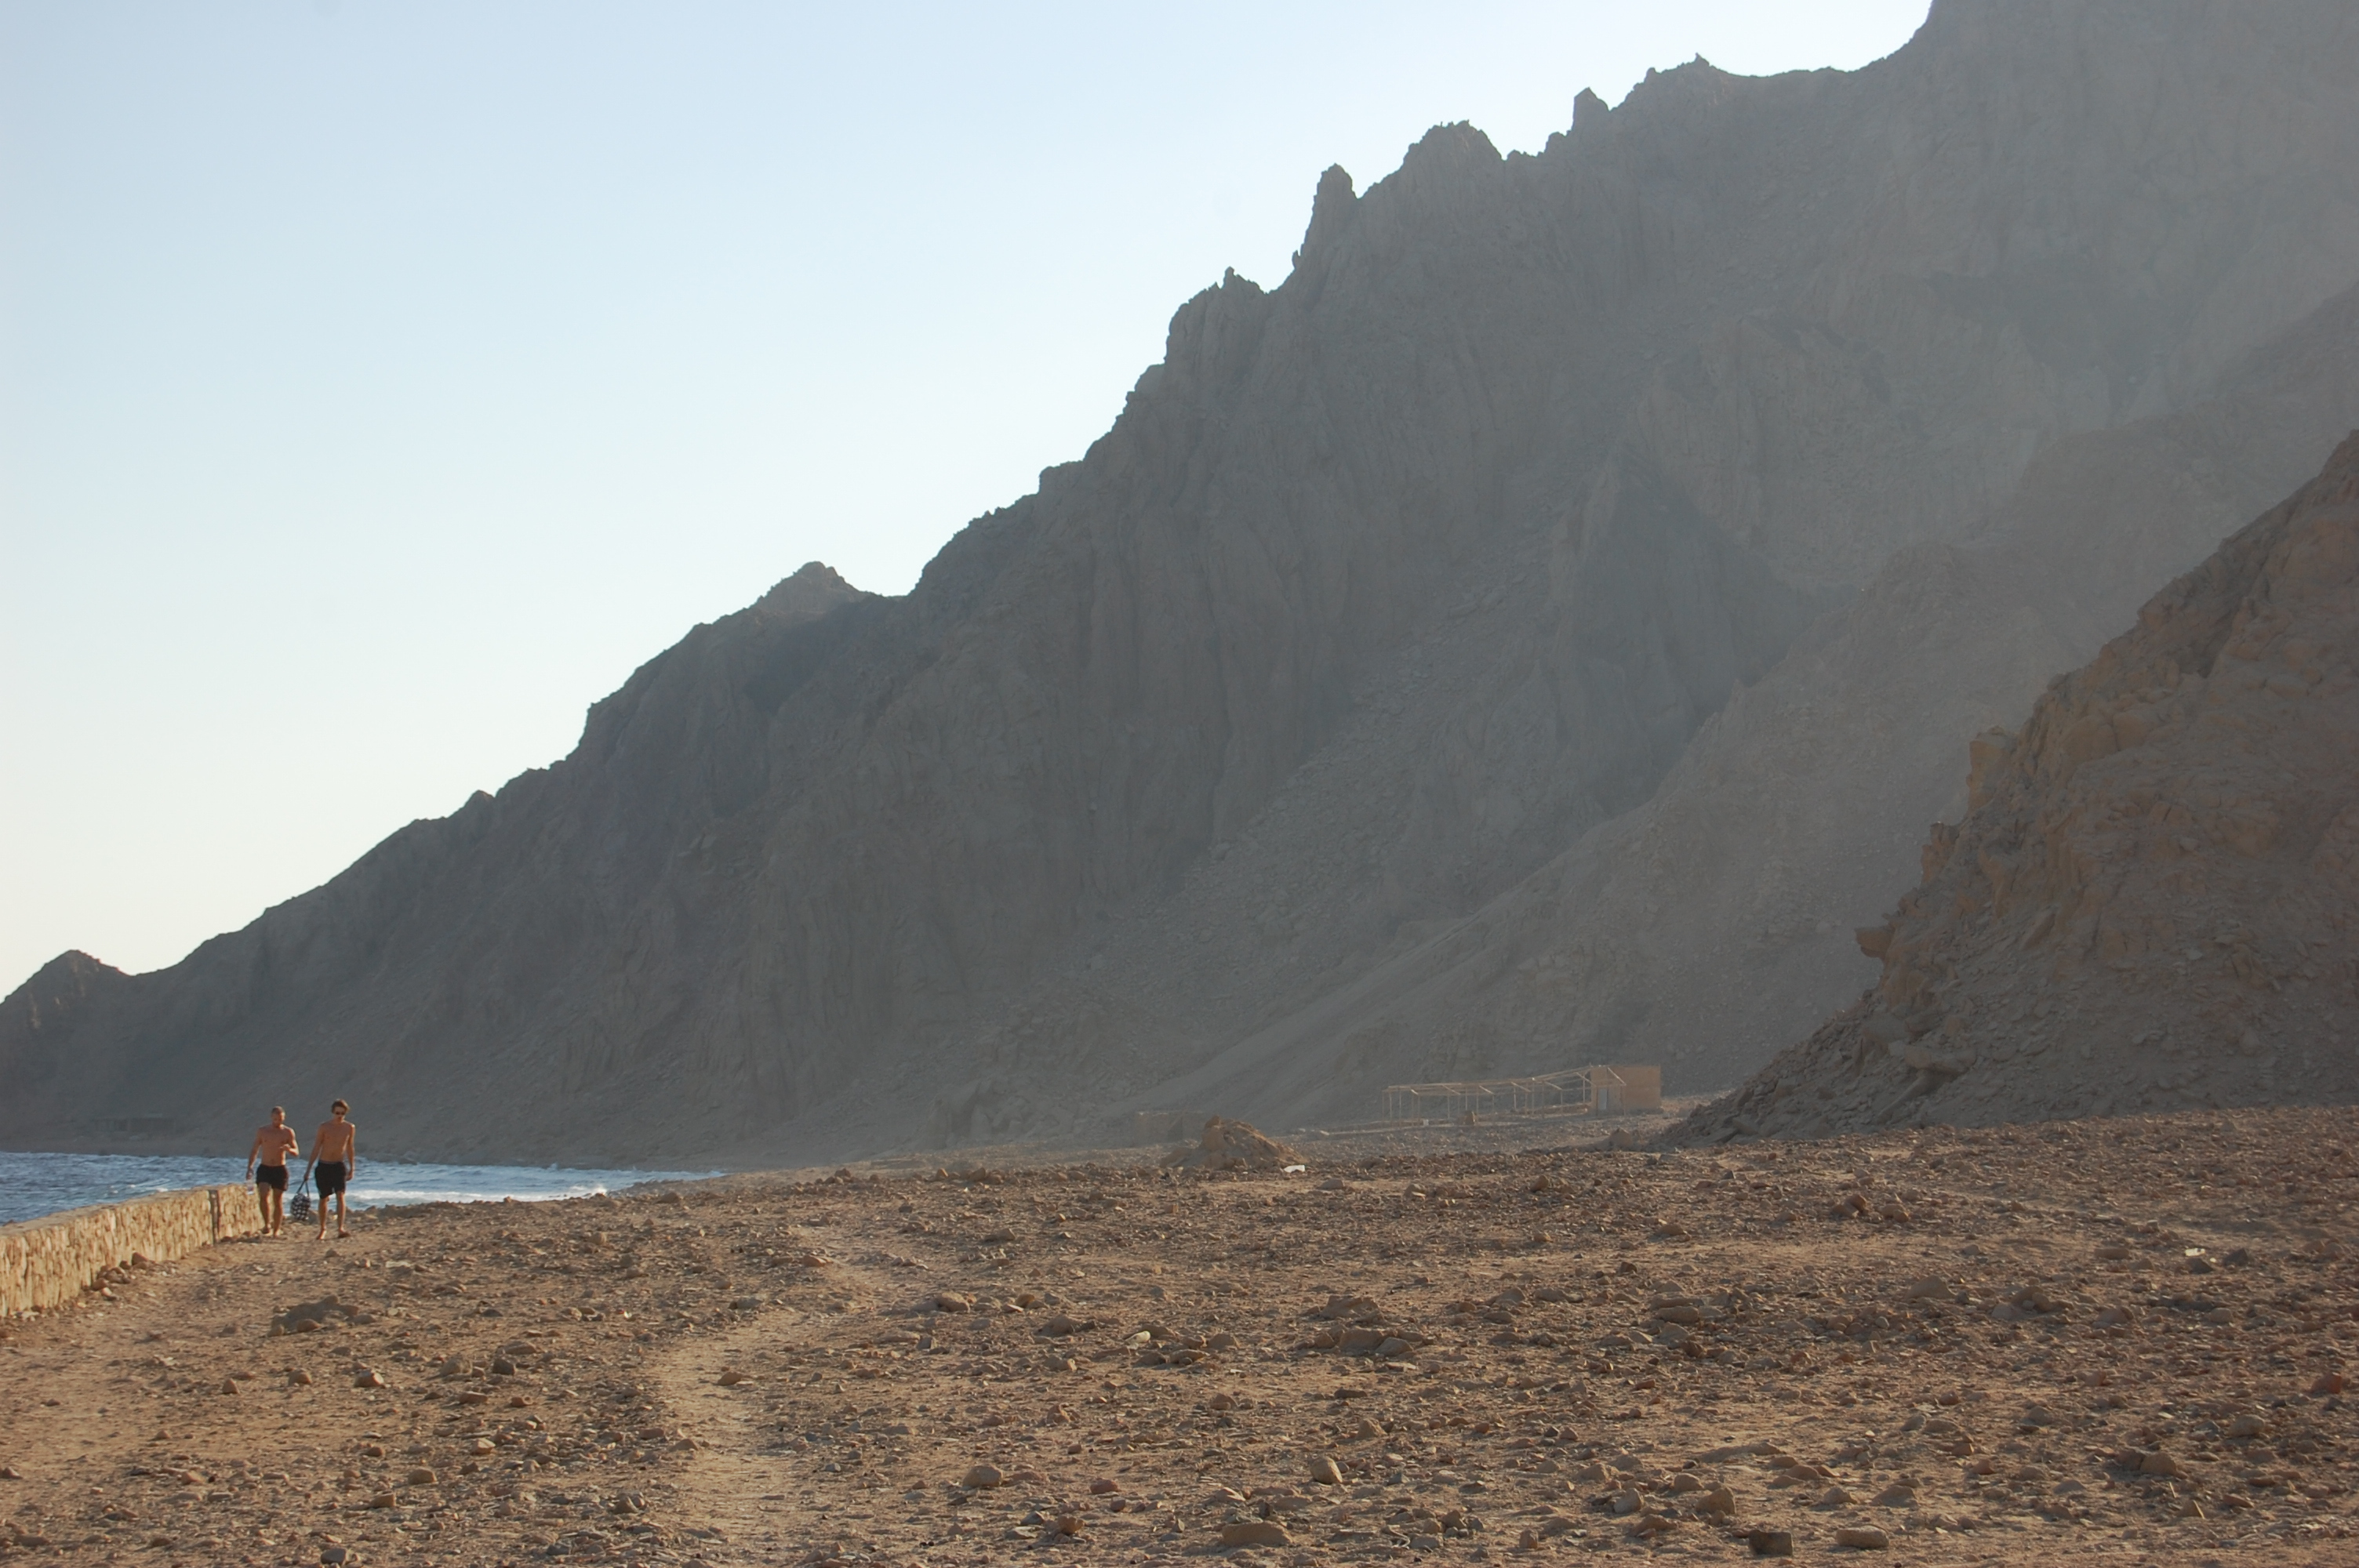 The mountains meet the sea on the walk towards Ras Abu Galloum (Photo by: Joel Gulhane)